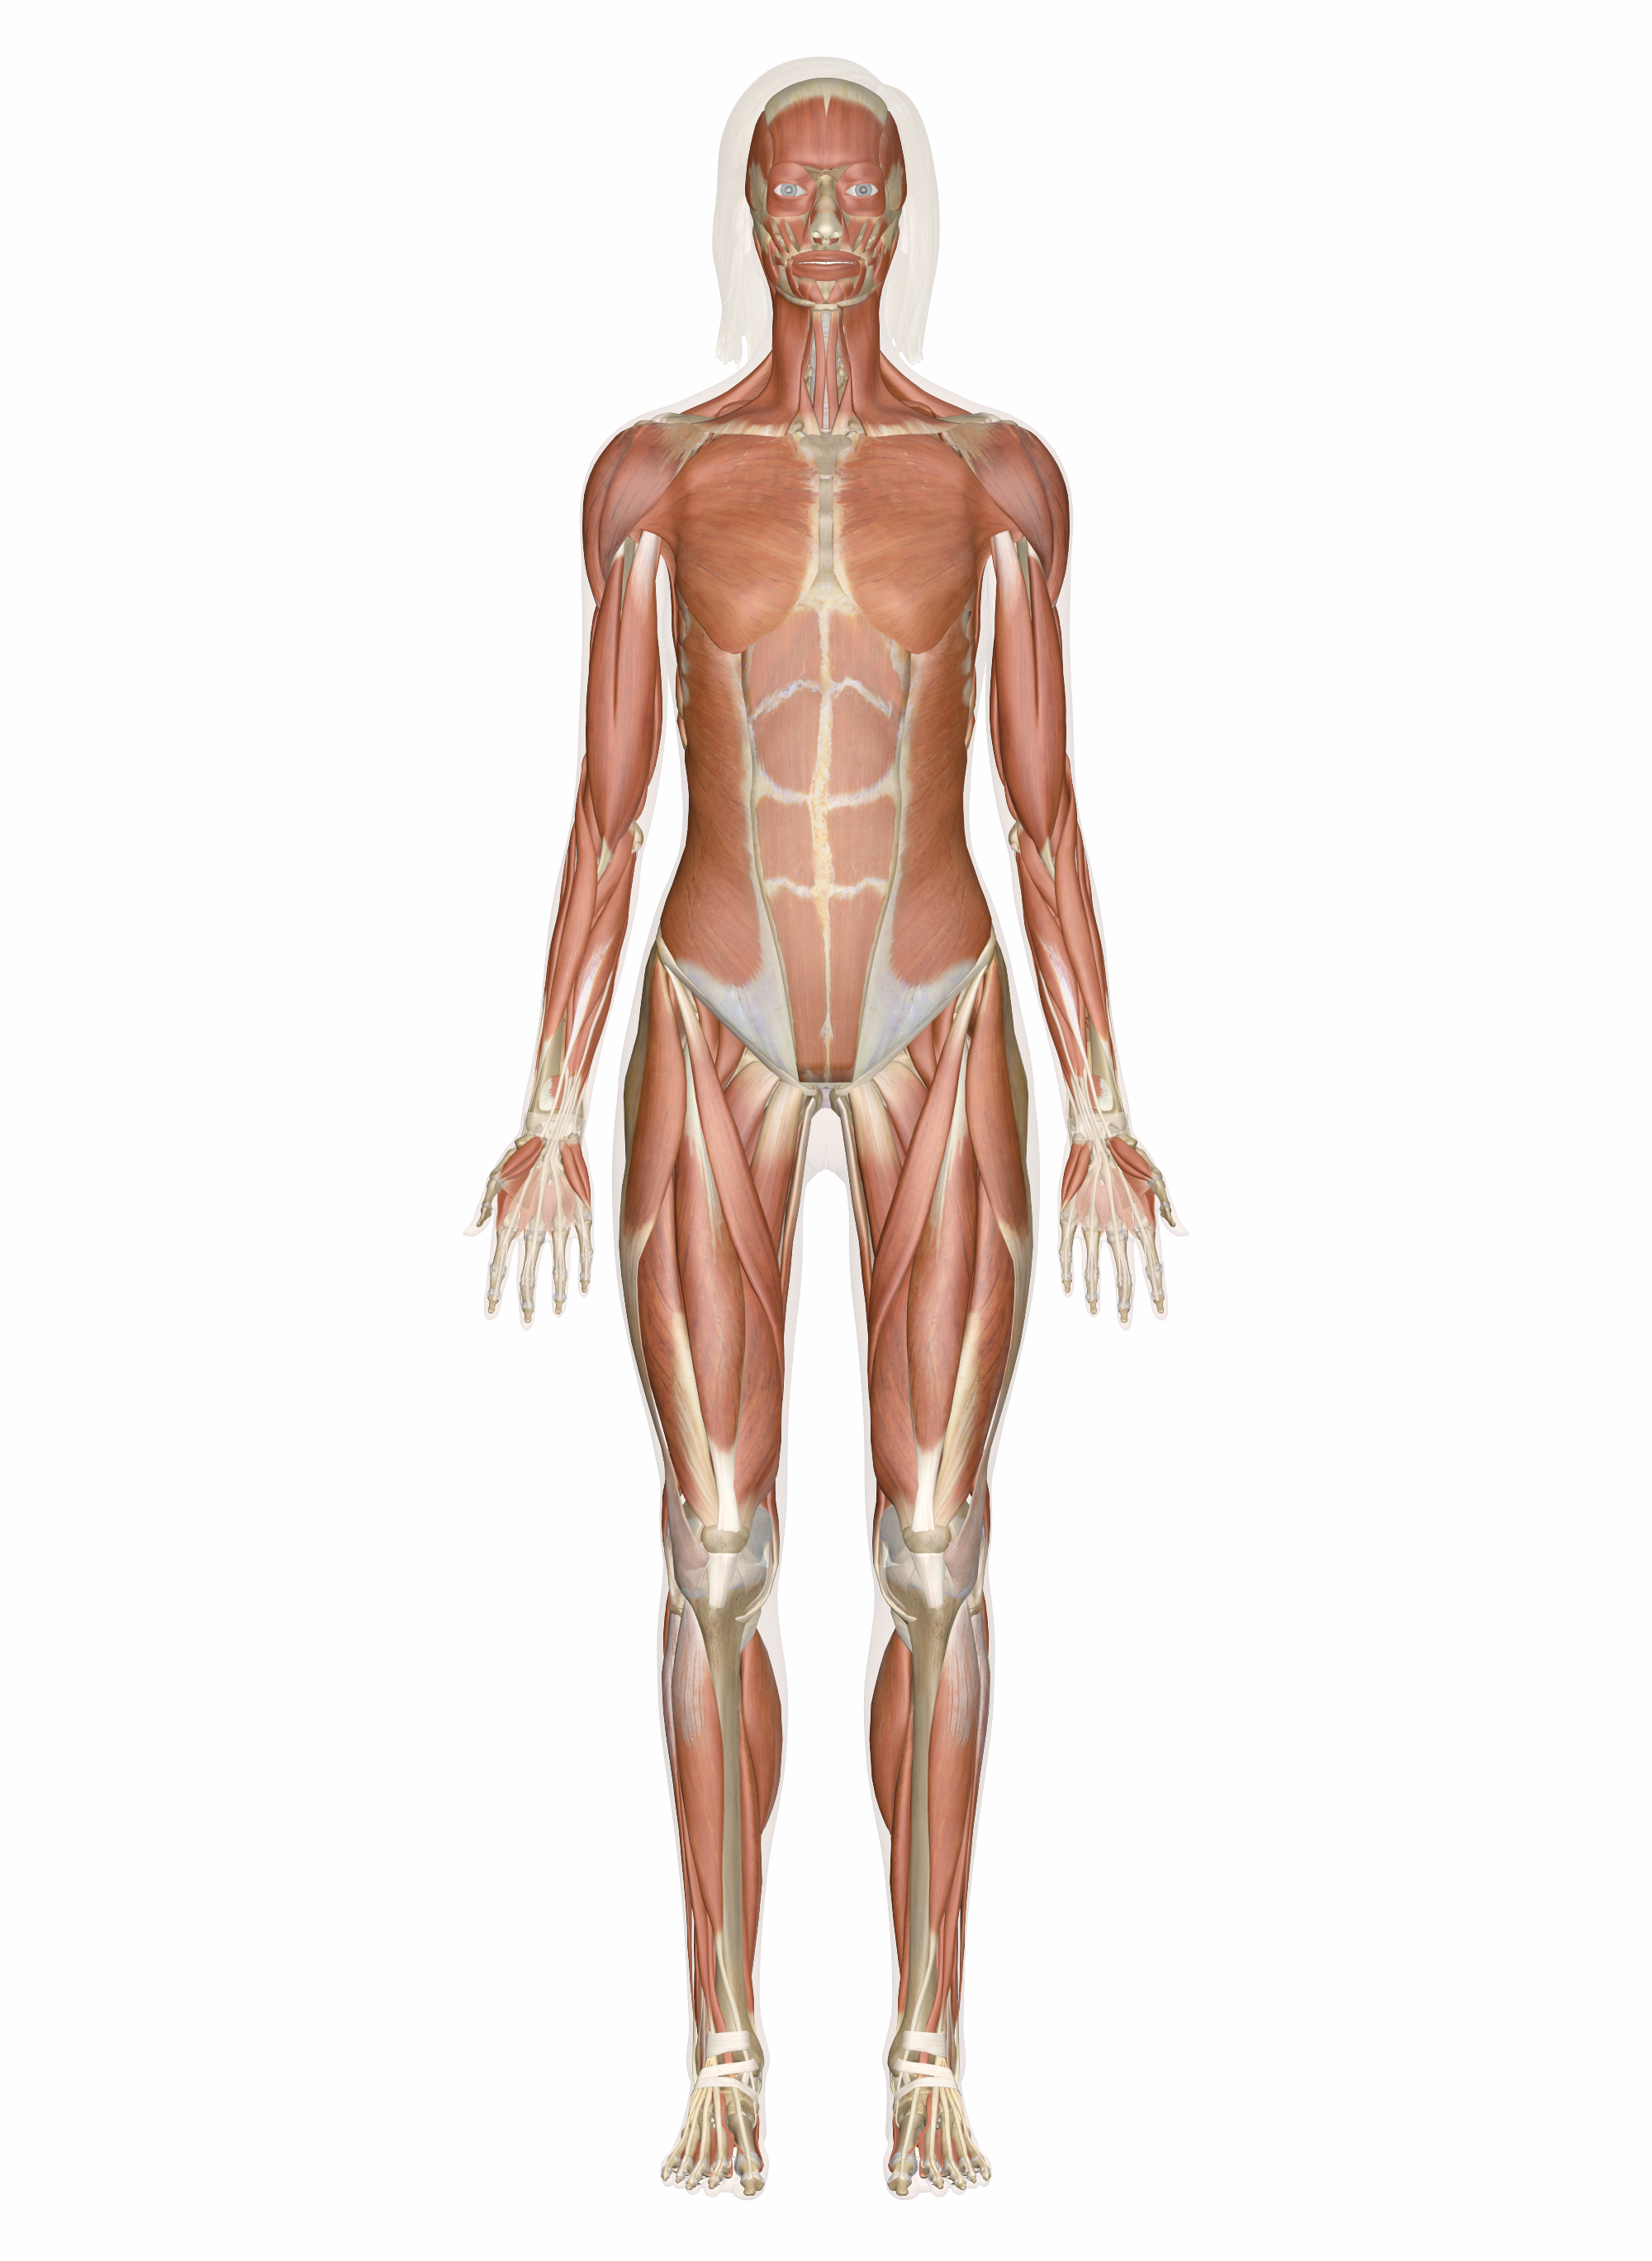 Human Muscular System The Muscles Of The Human Body Are